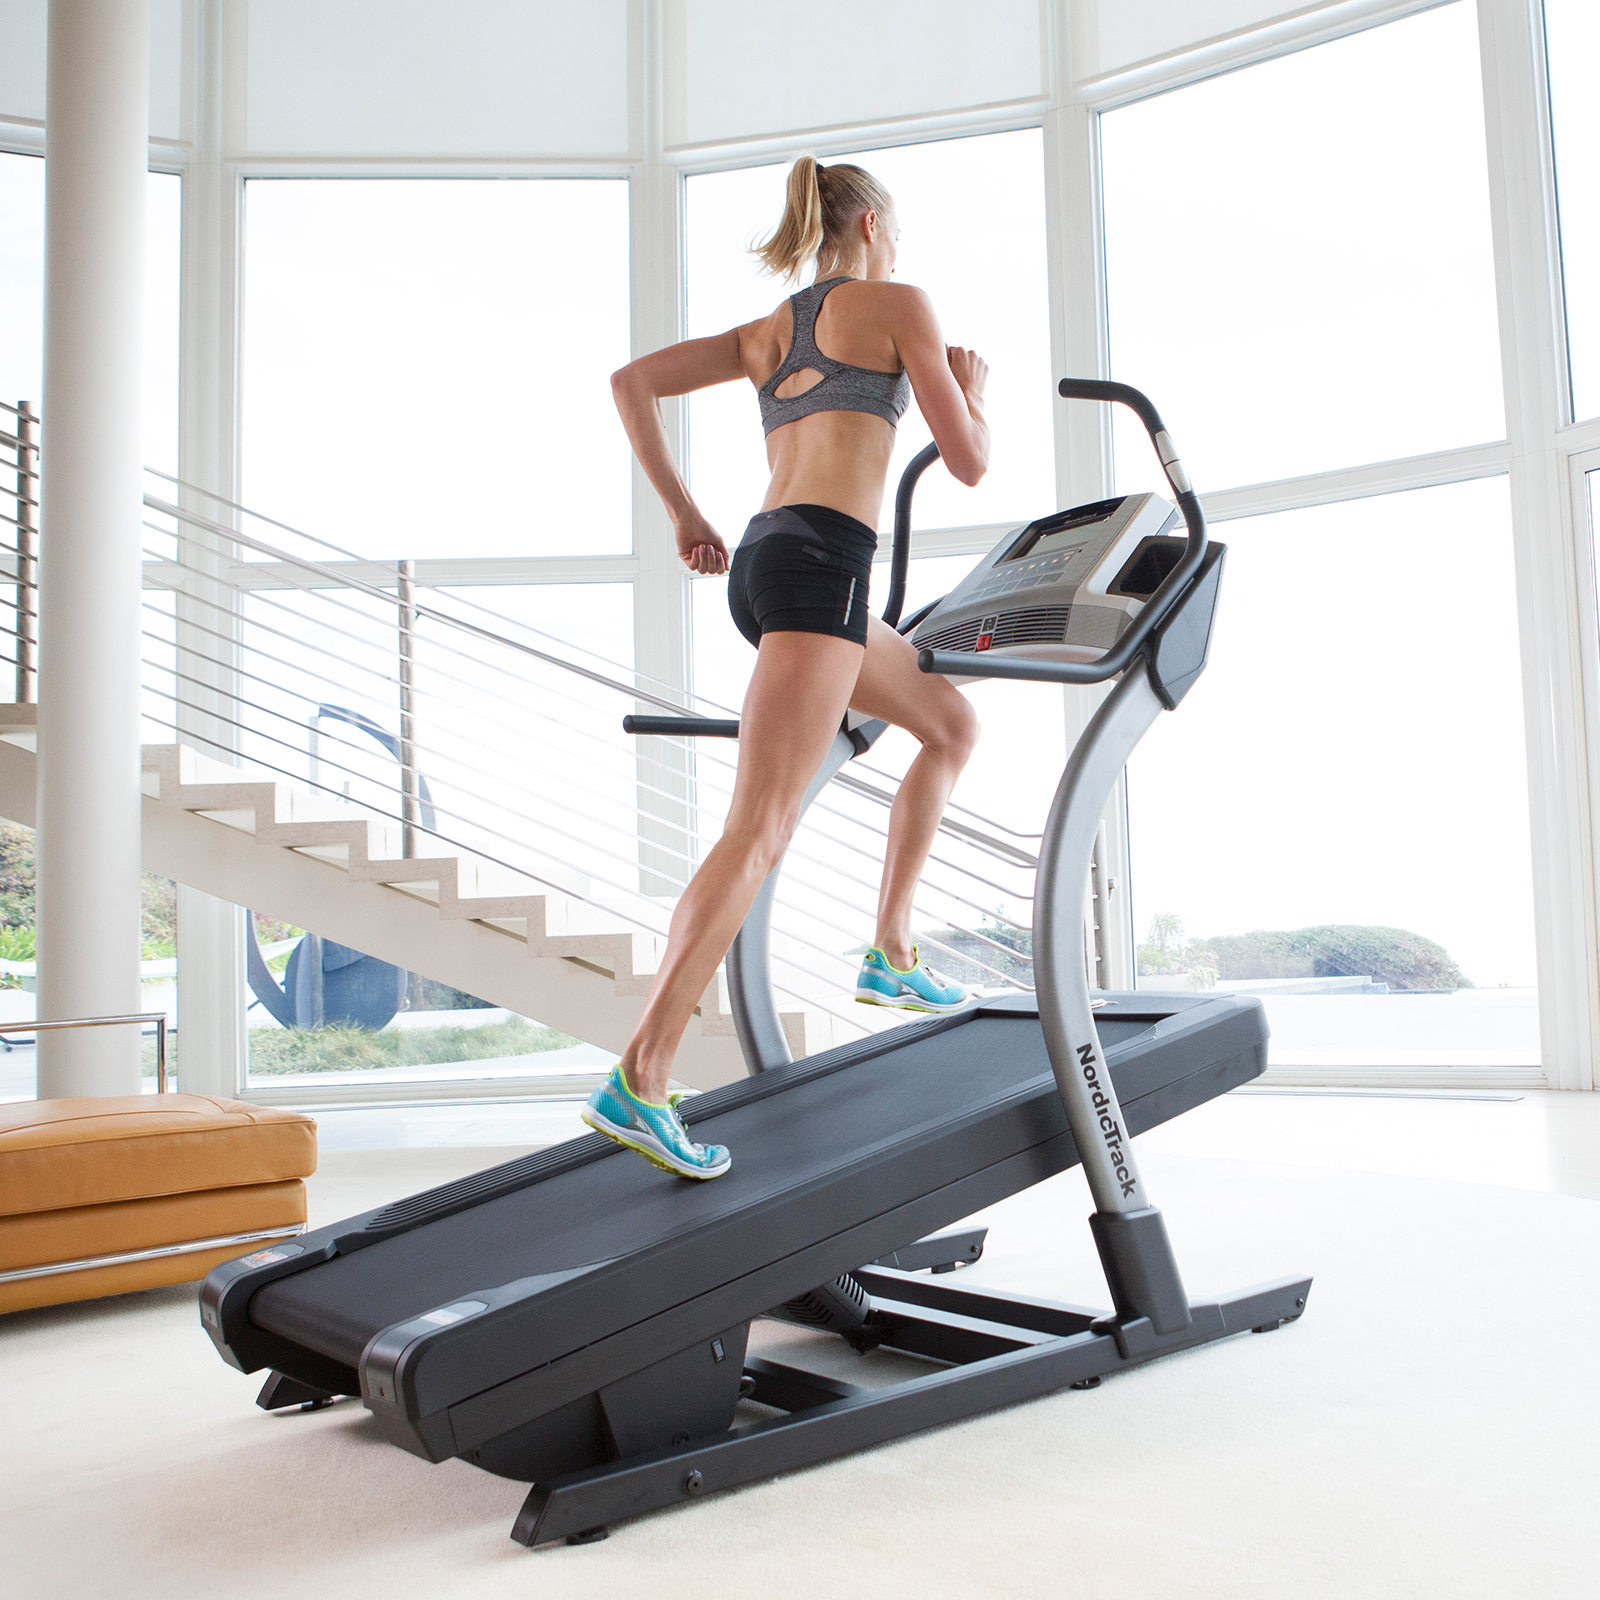 NordicTrack X7i Incline Trainer Treadmill